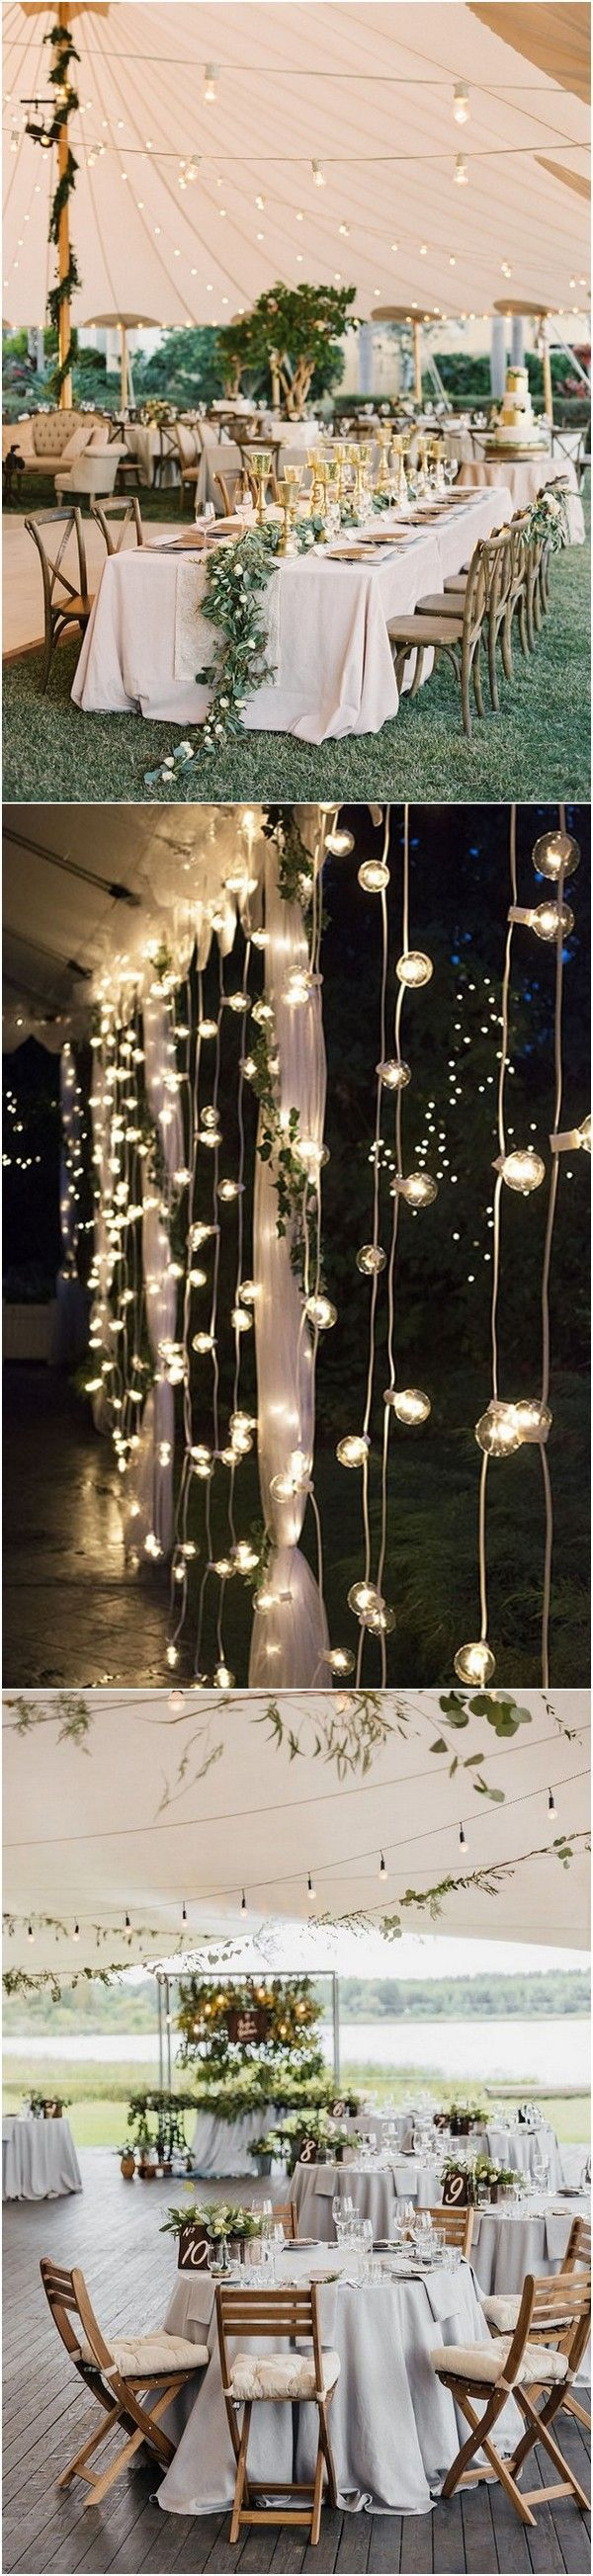 Rustic chic beach wedding decoration ideas i love the use of rustic chic beach wedding decoration ideas i love the use of lights to make the junglespirit Gallery